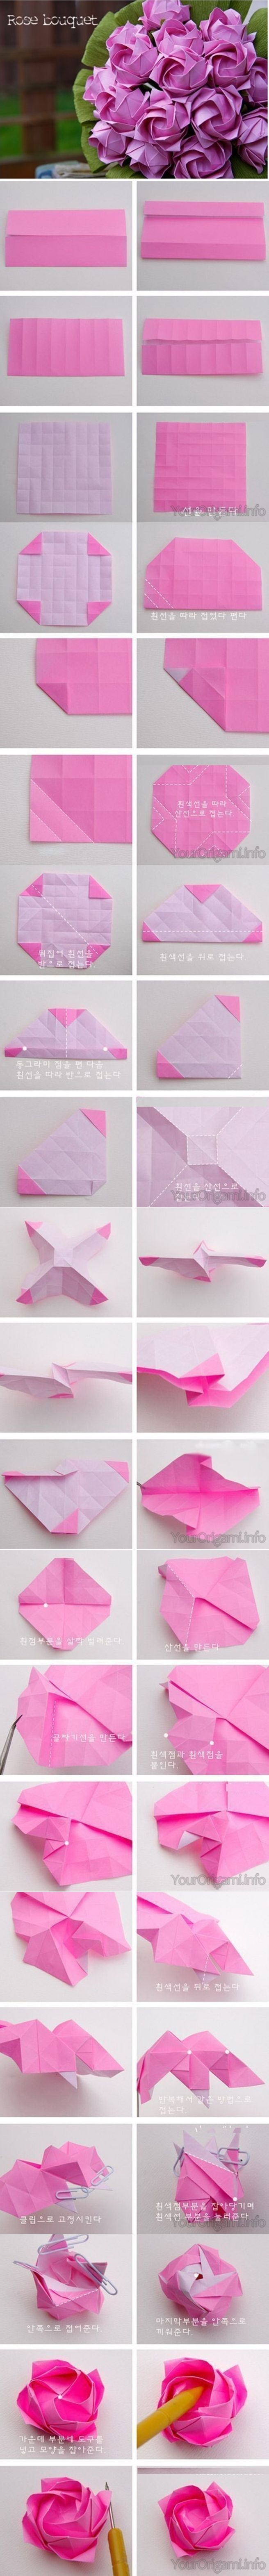 Diy beautiful origami paper rose bouquet cute crafts pinterest origami rose for bouquet infographic izmirmasajfo